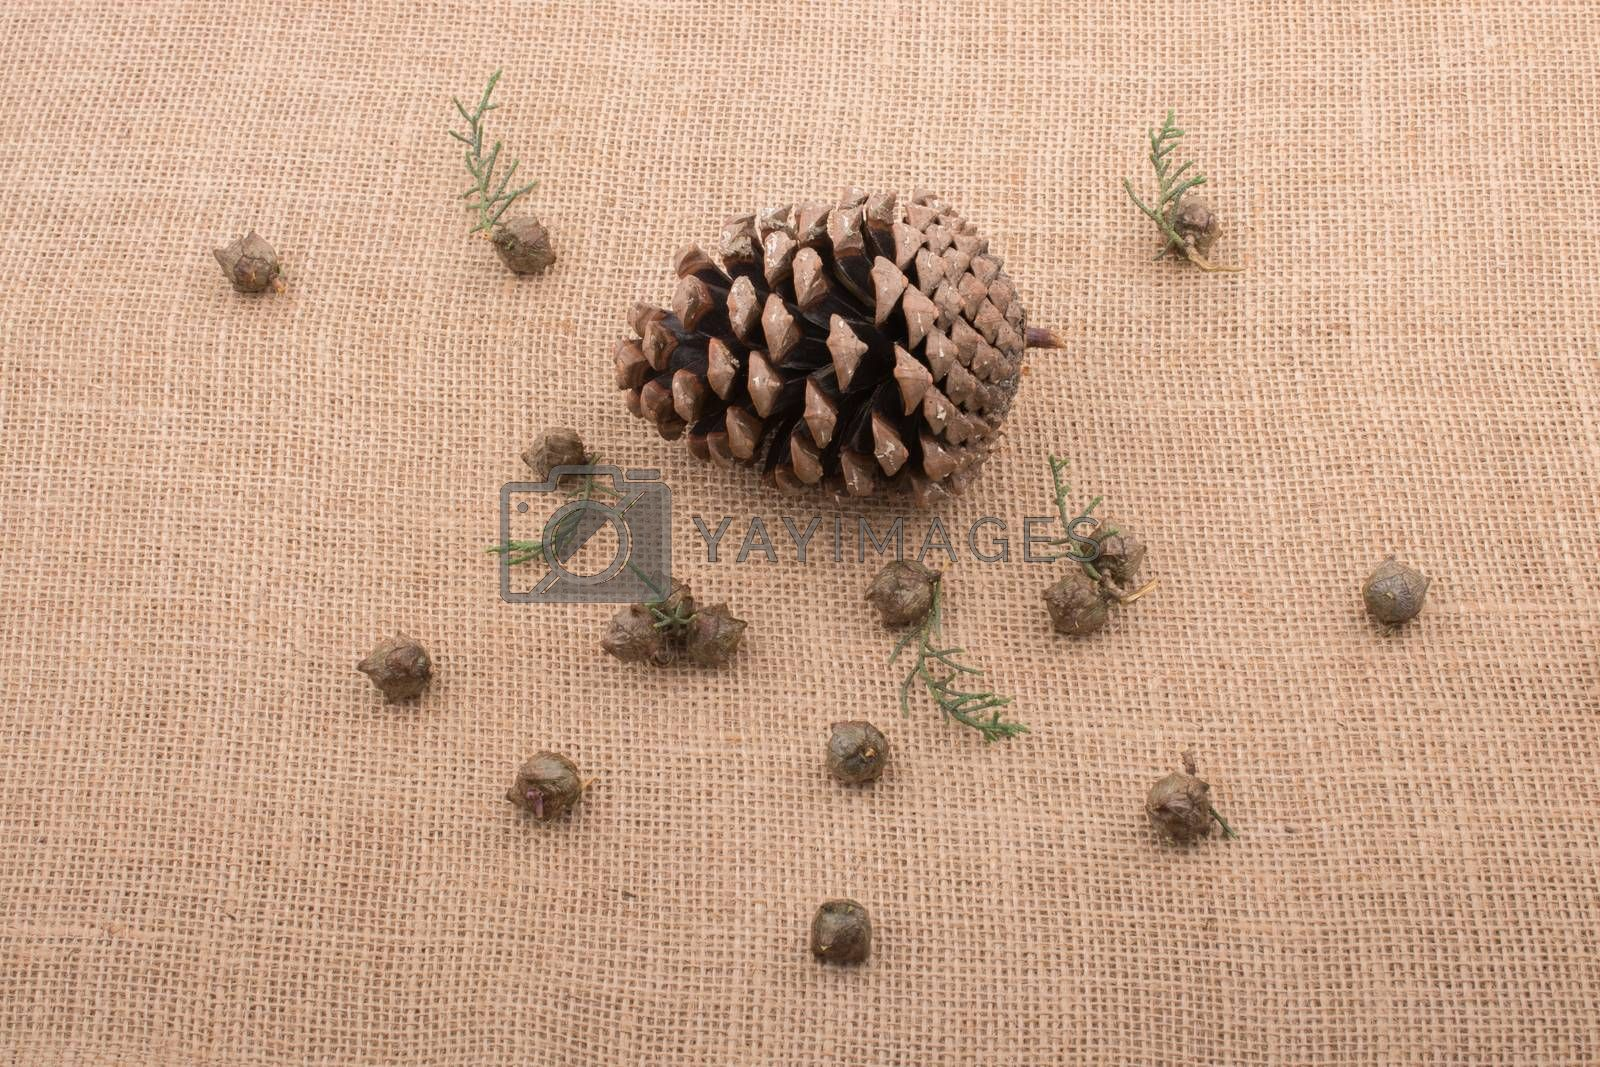 Plant pods, capsules and pine cones on canvas background